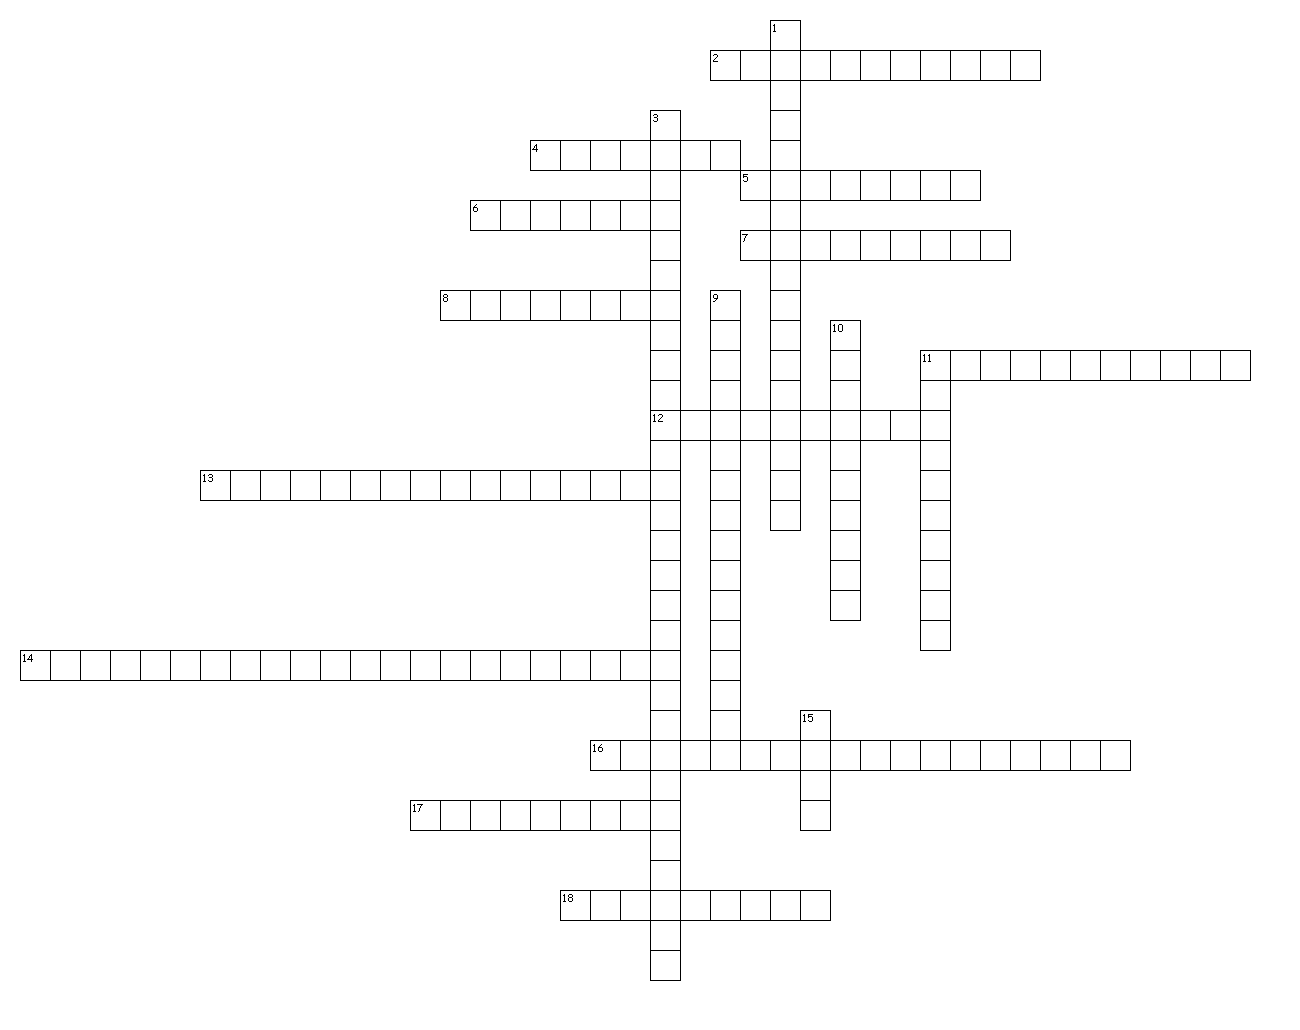 Criss Cross Puzzle